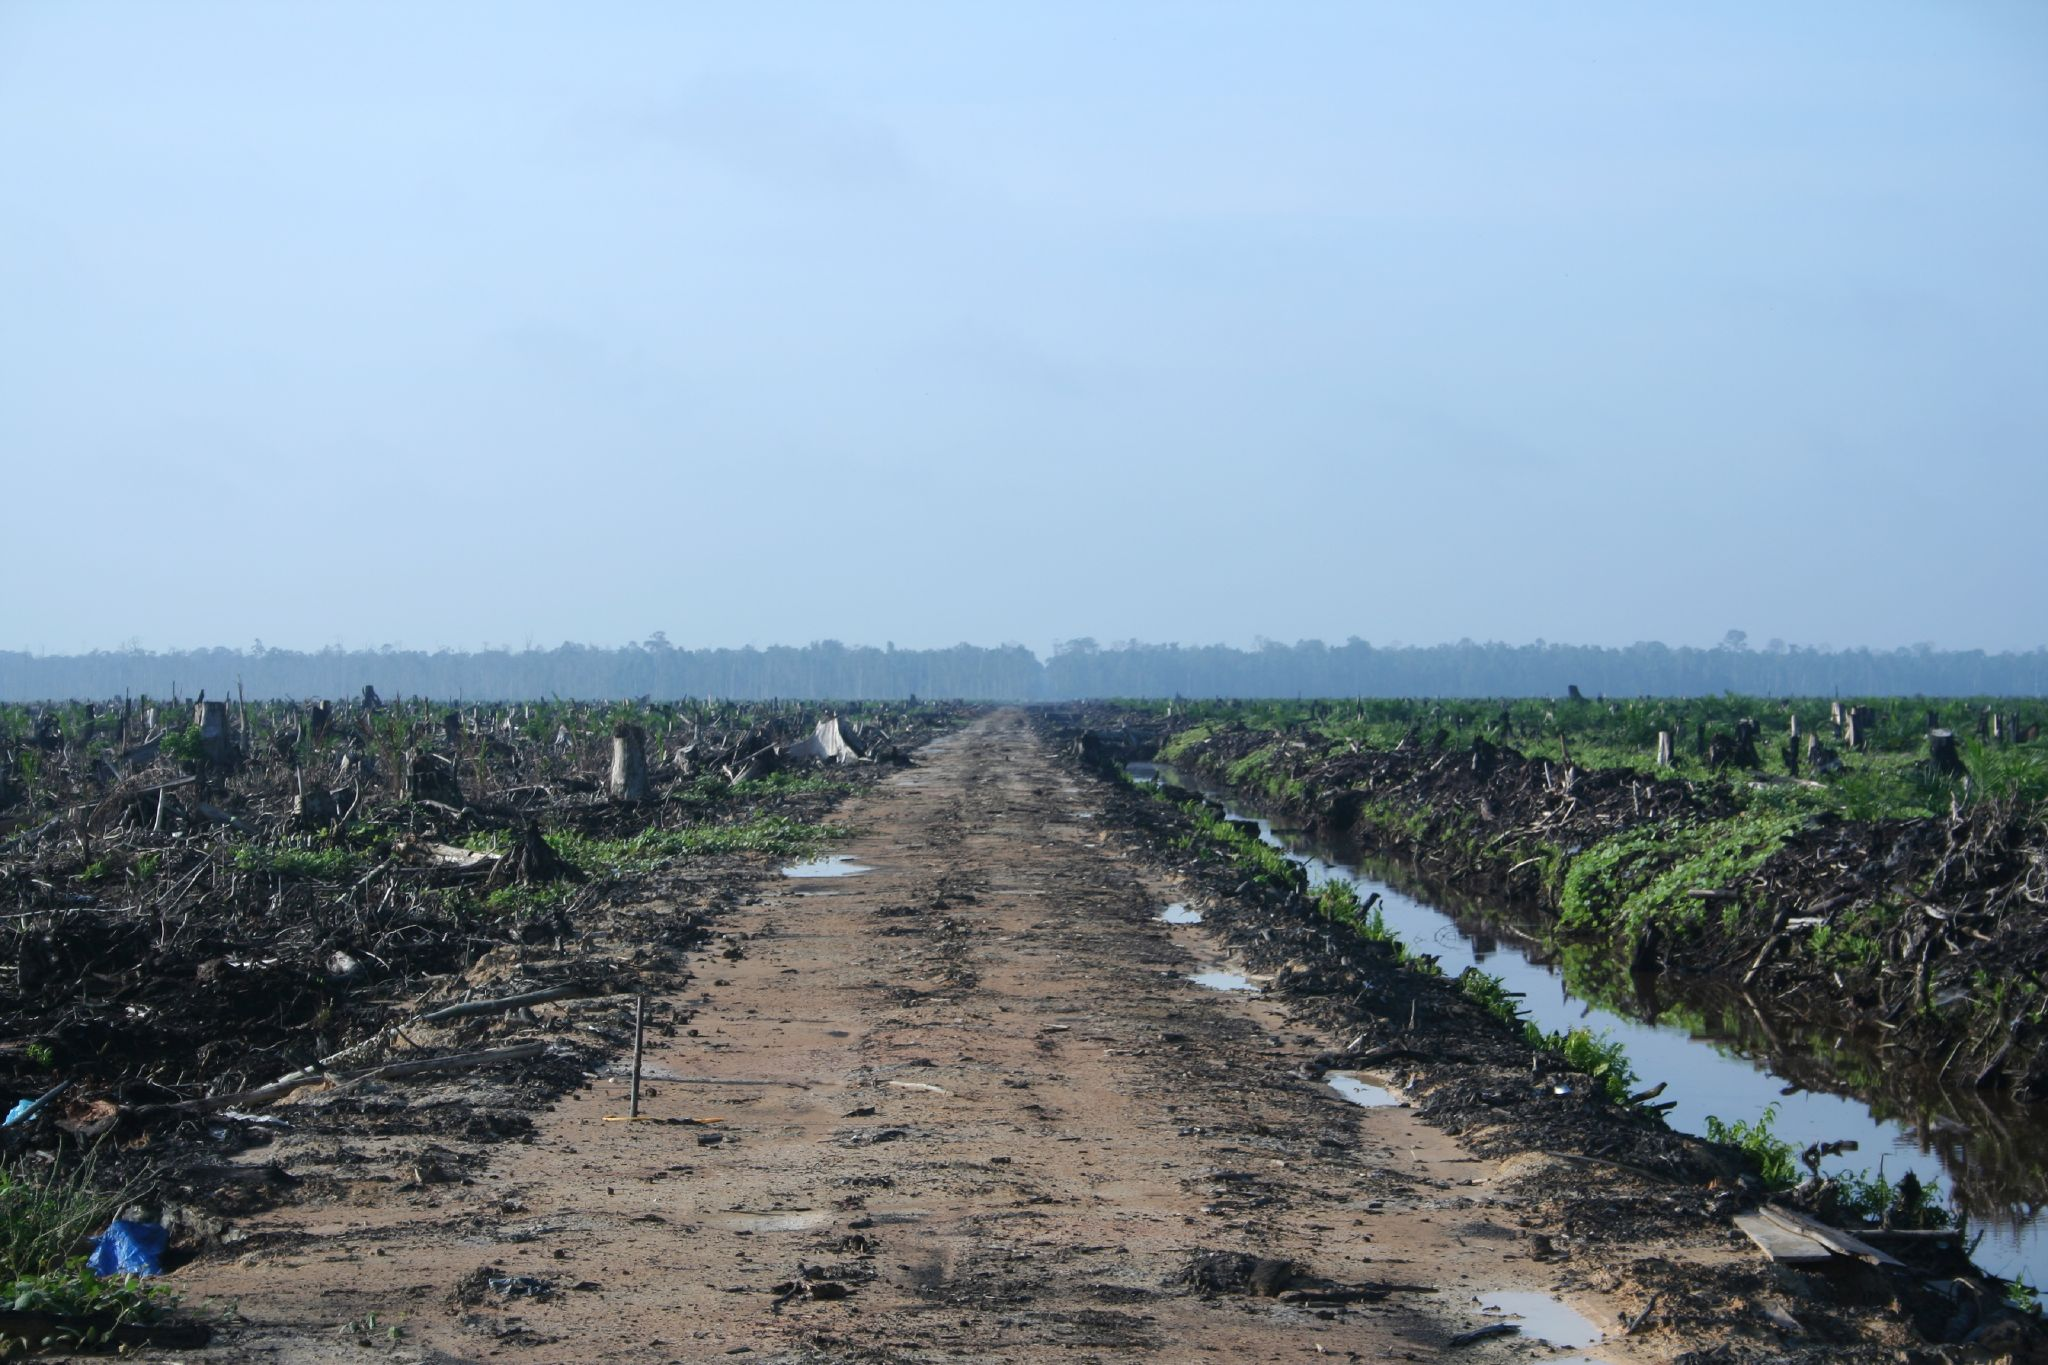 Riau palm oil 2007.jpg